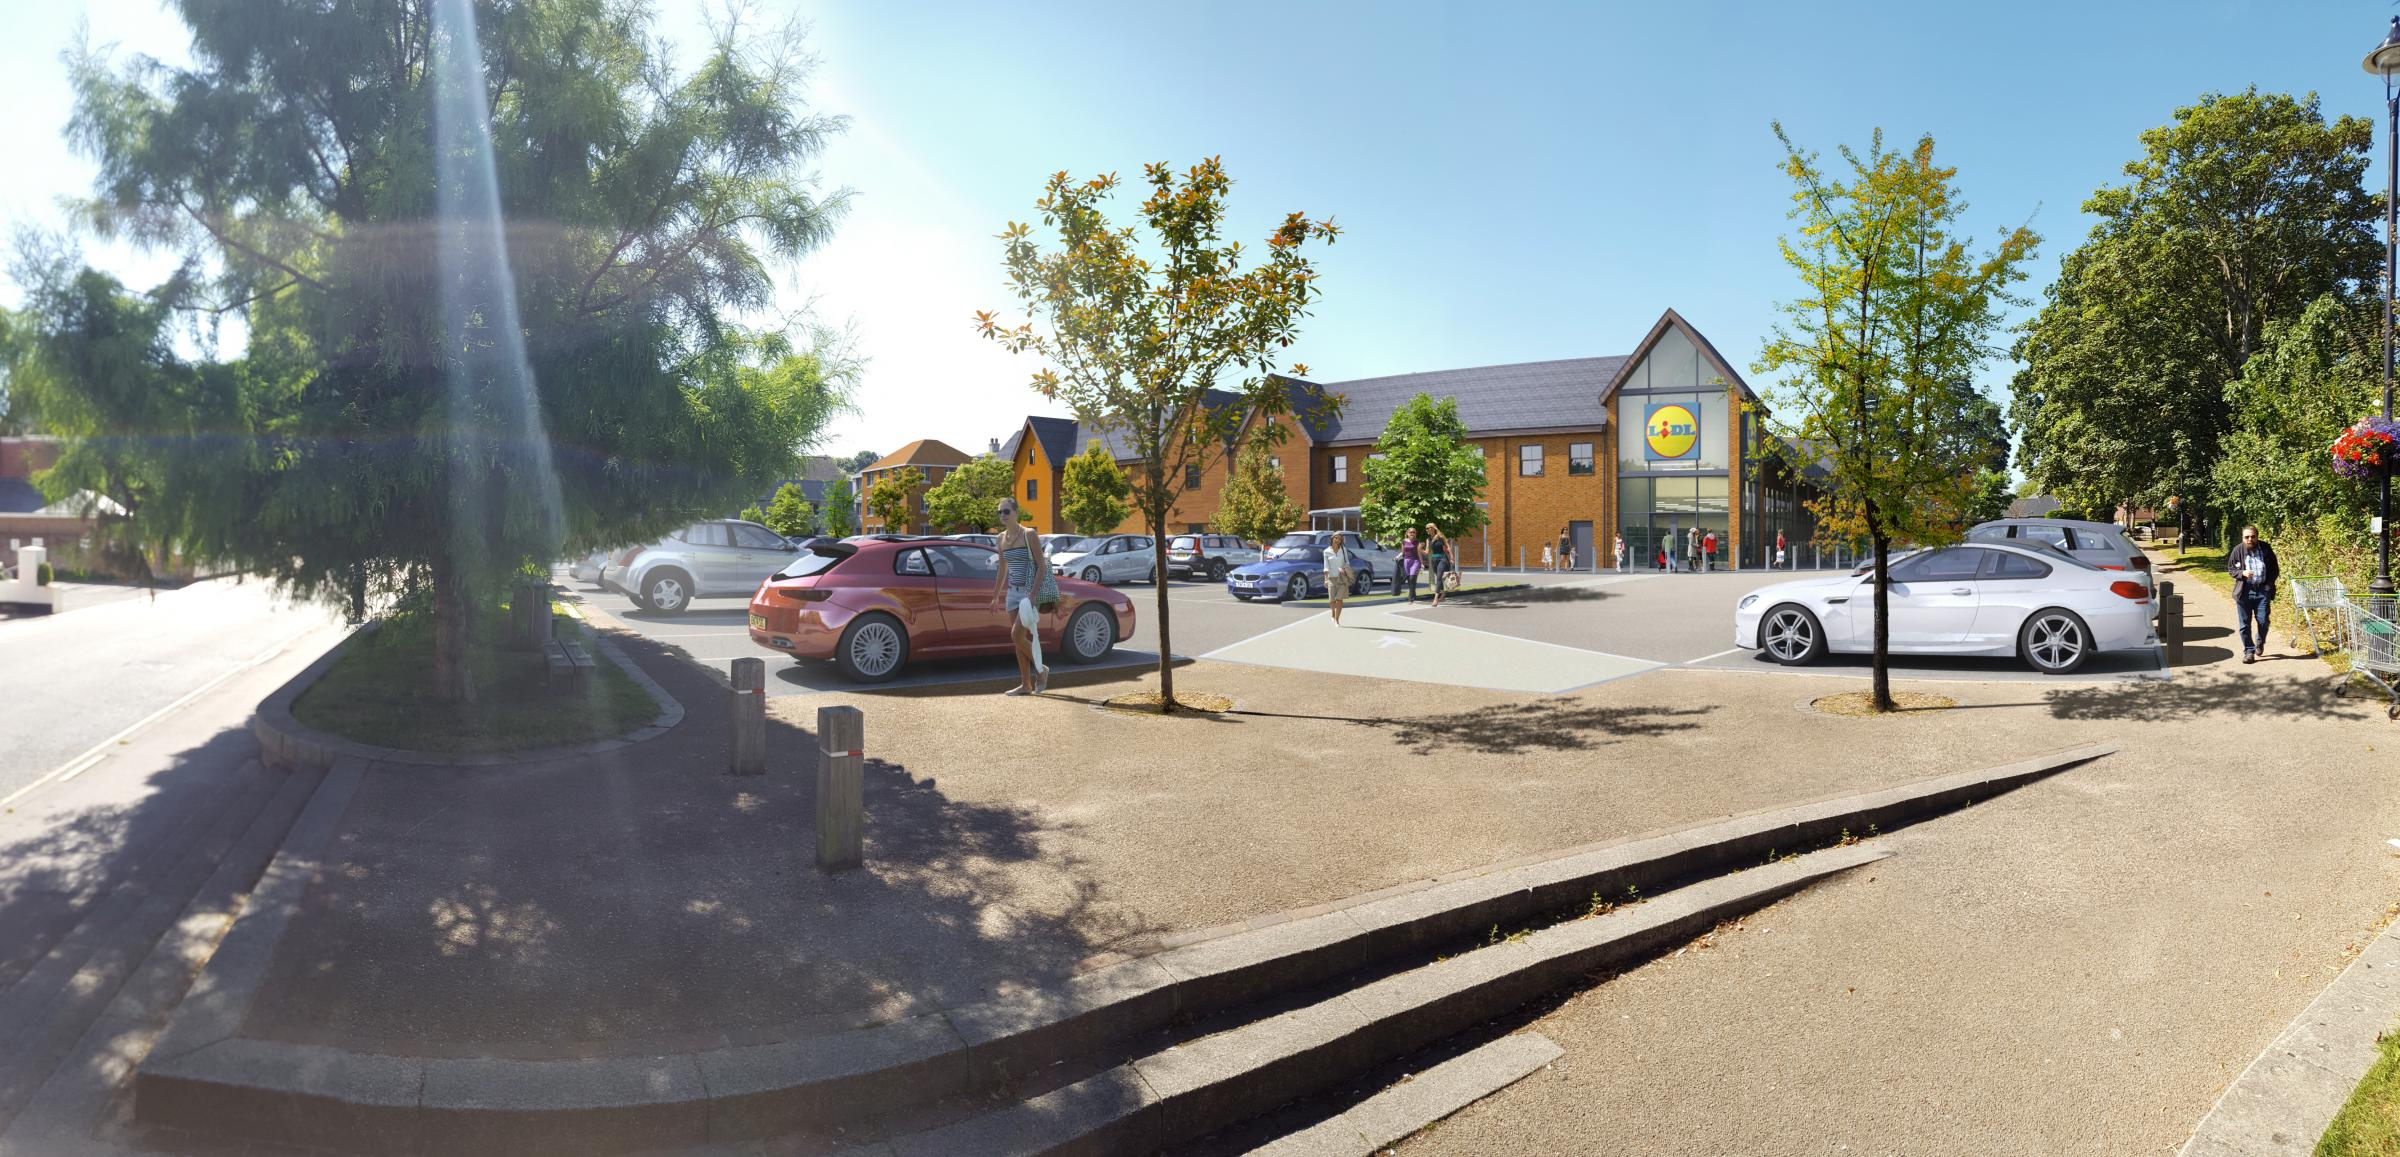 An artist's impression of the Lidl in Hythe.